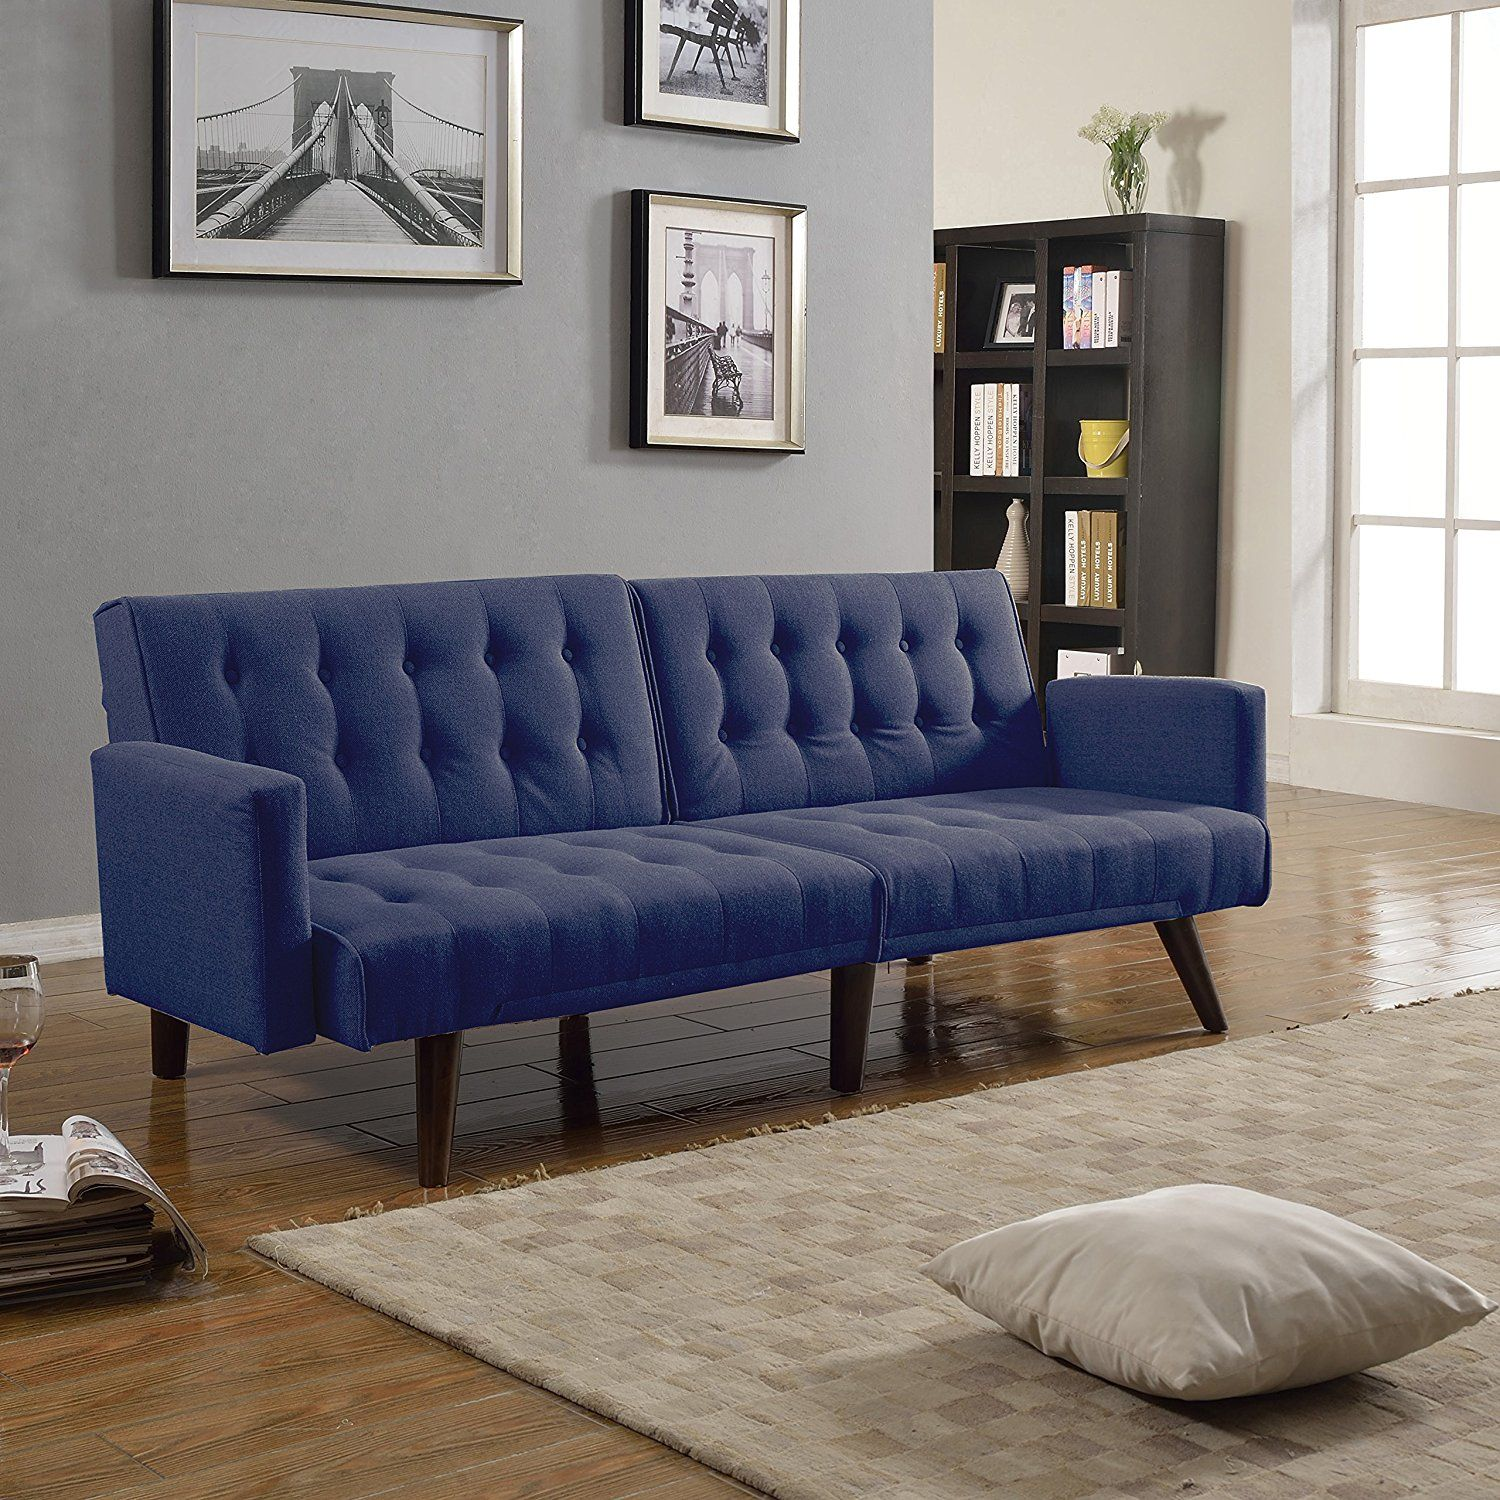 Modern Convertible Linen Futon Tufted Sofa